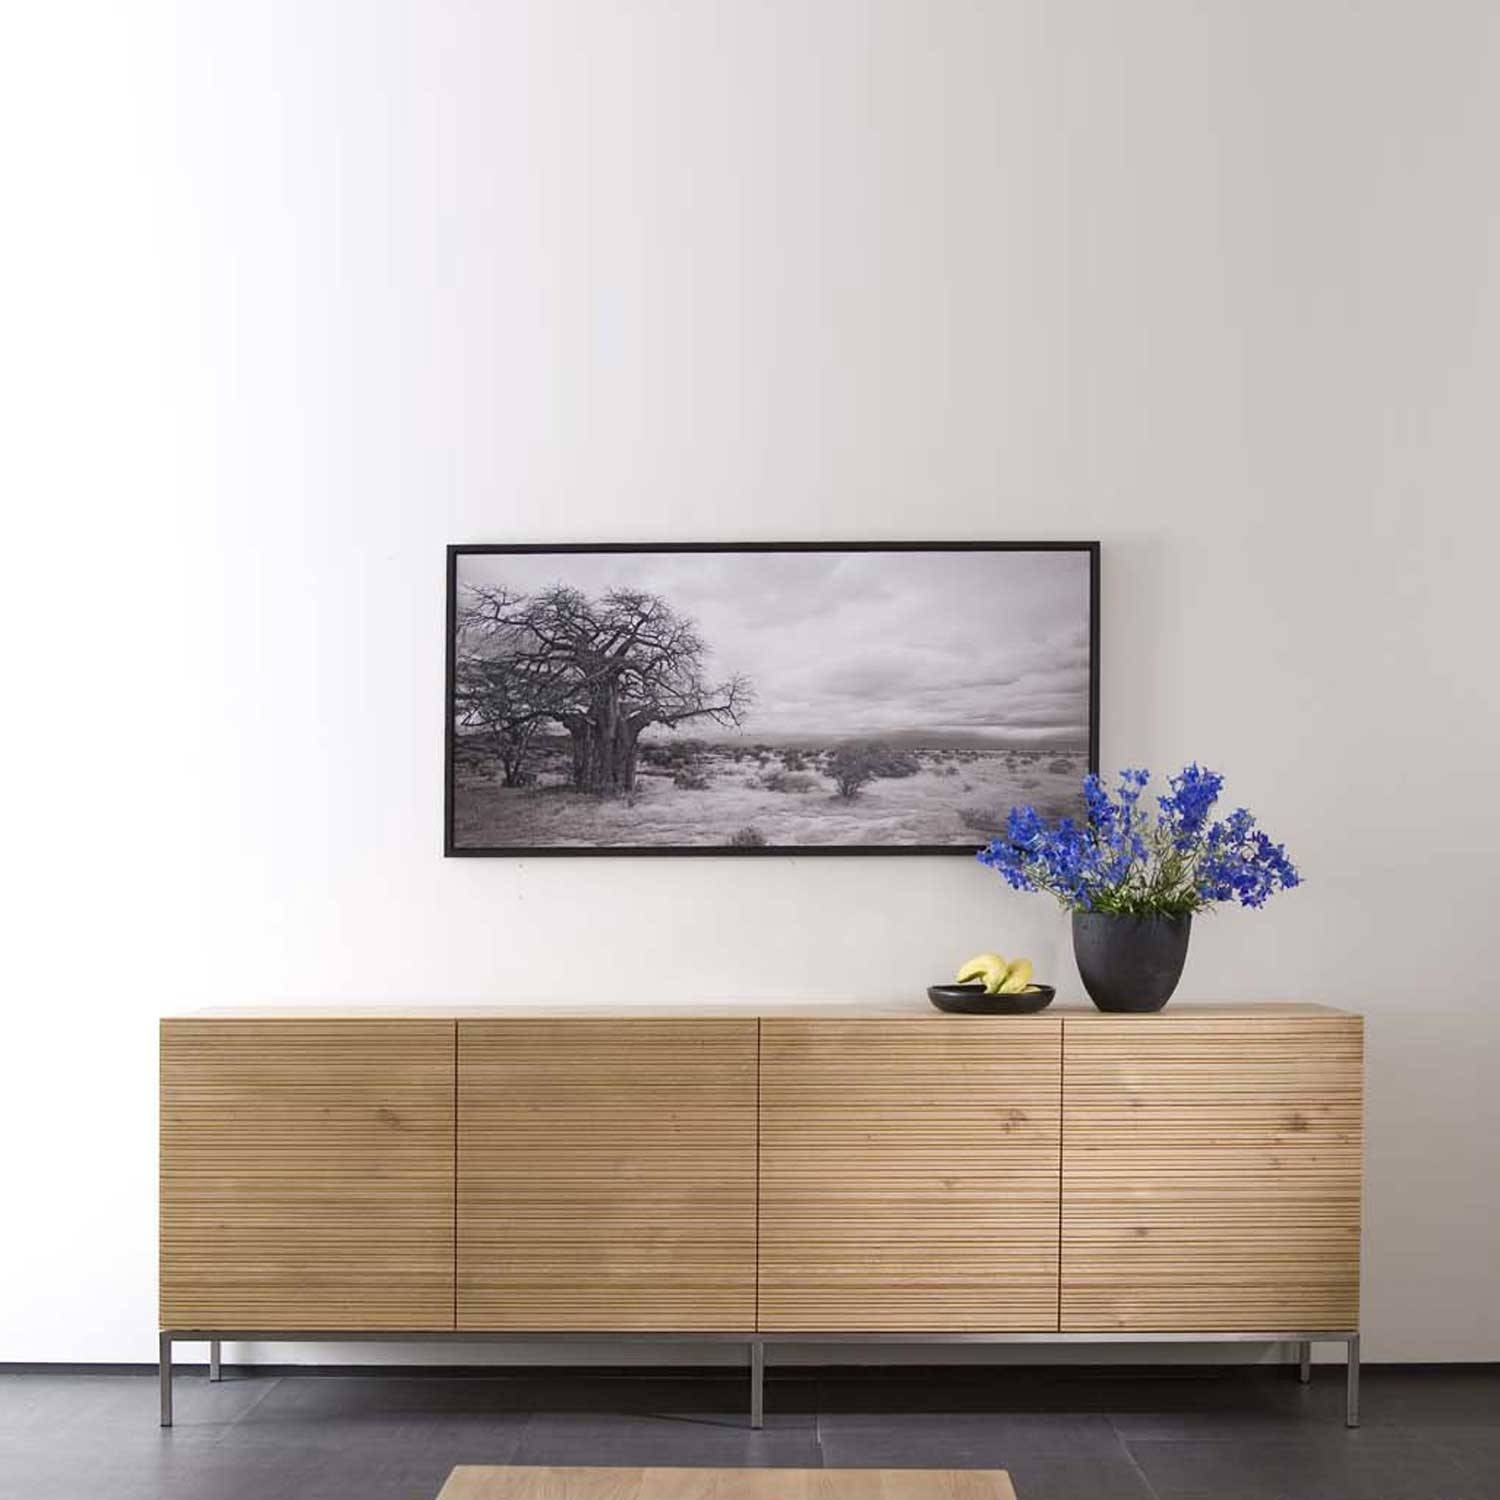 Ethnicraft Stonecut Oak Sideboards | Solid Wood Furniture Within White And Wood Sideboards (#3 of 15)